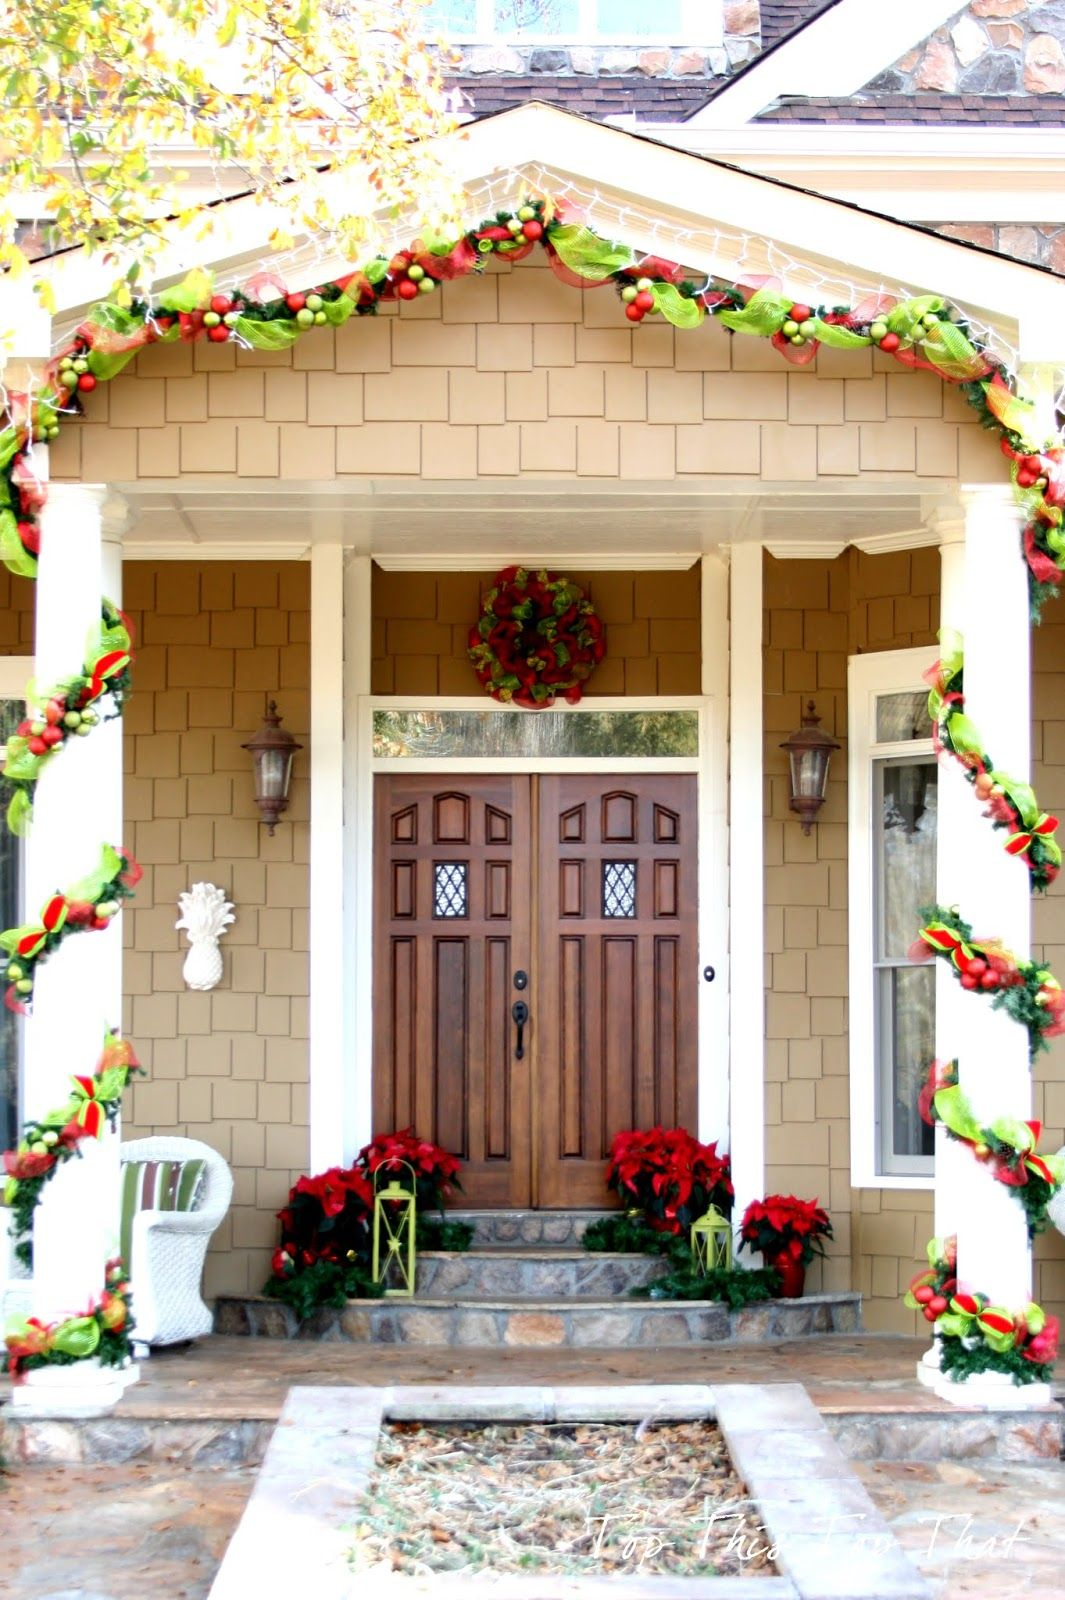 Decoration Fl Poinsettia Also Lanterns For Scenic Christmas Porch Feat Decorative Garland On Pillars Admirable